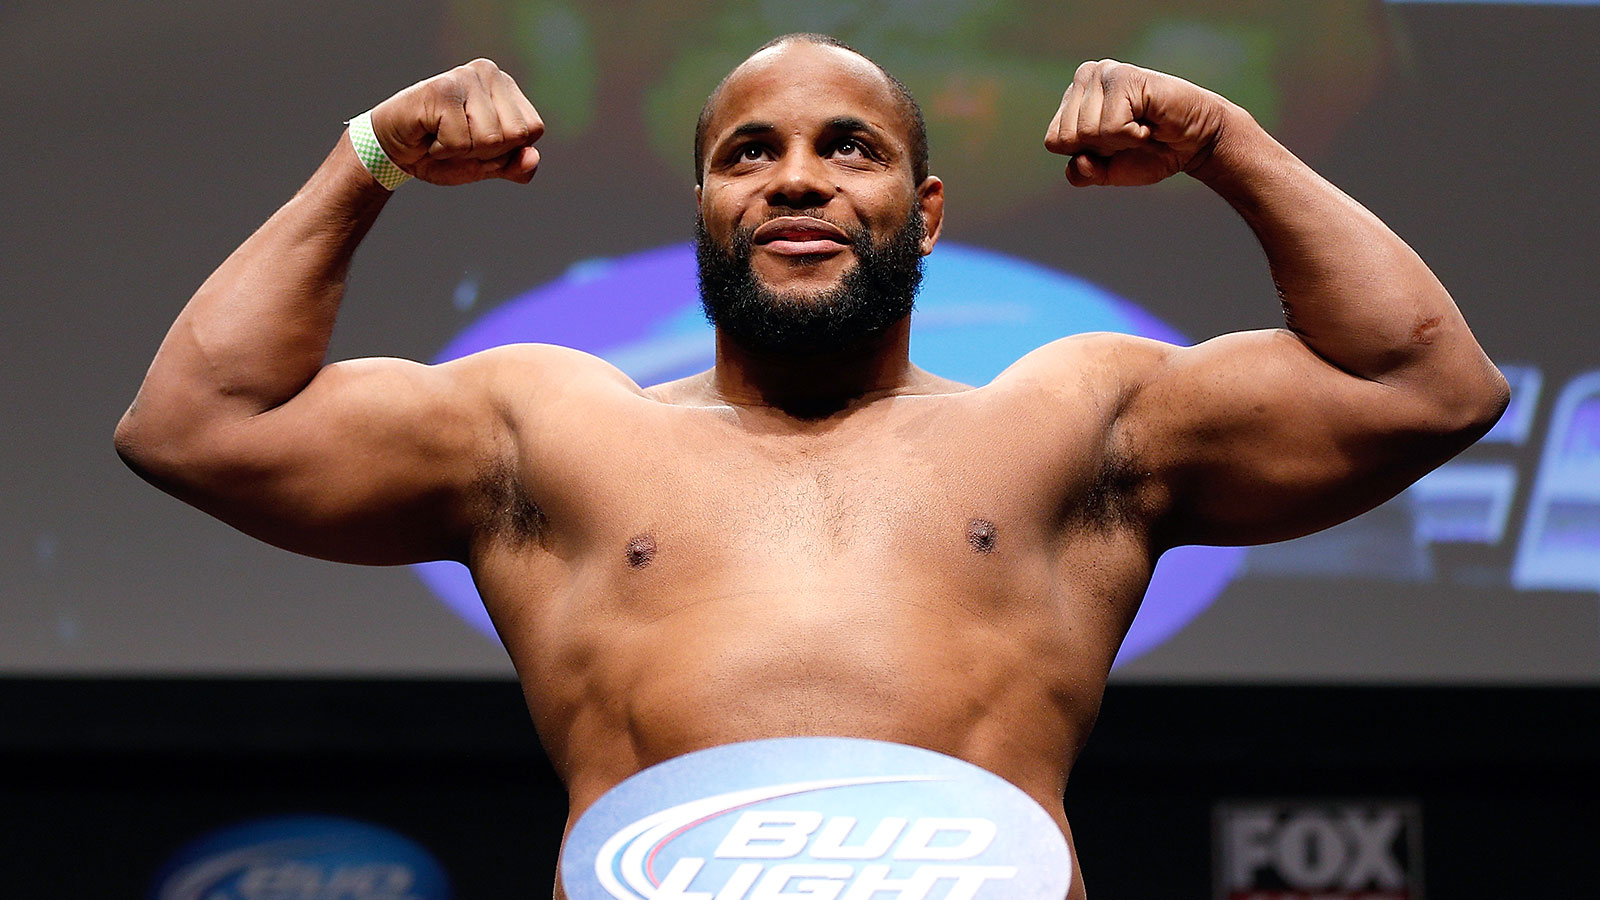 Daniel Cormier copies Tai Tuivasa; does a Shooey on live television! -